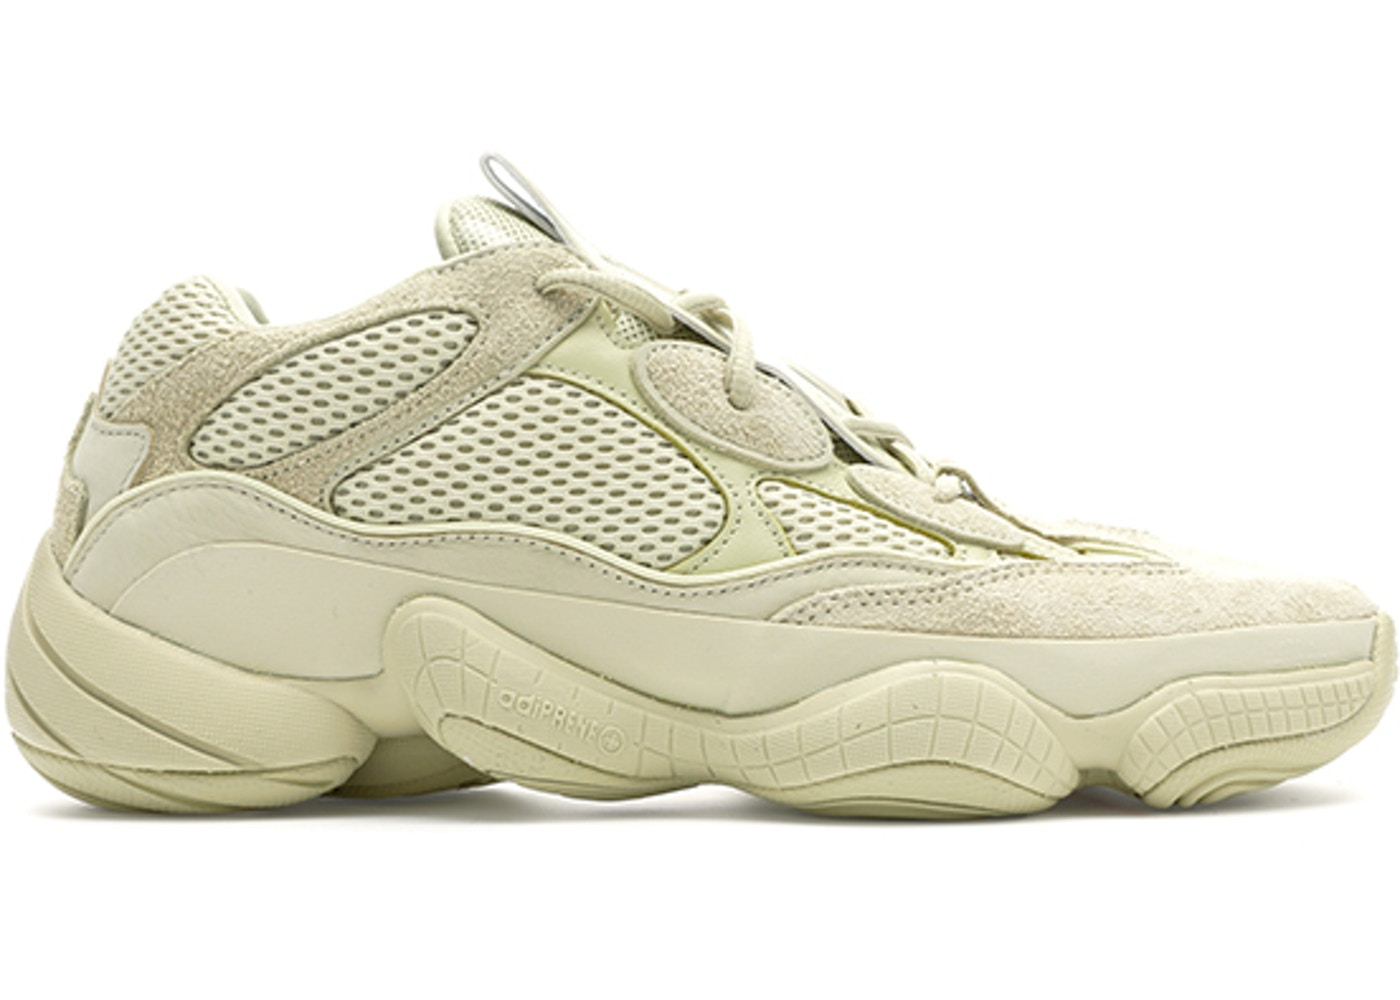 Adidas Adidas Yeezy 500 Blush Size 6 Low Top Sneakers for Sale